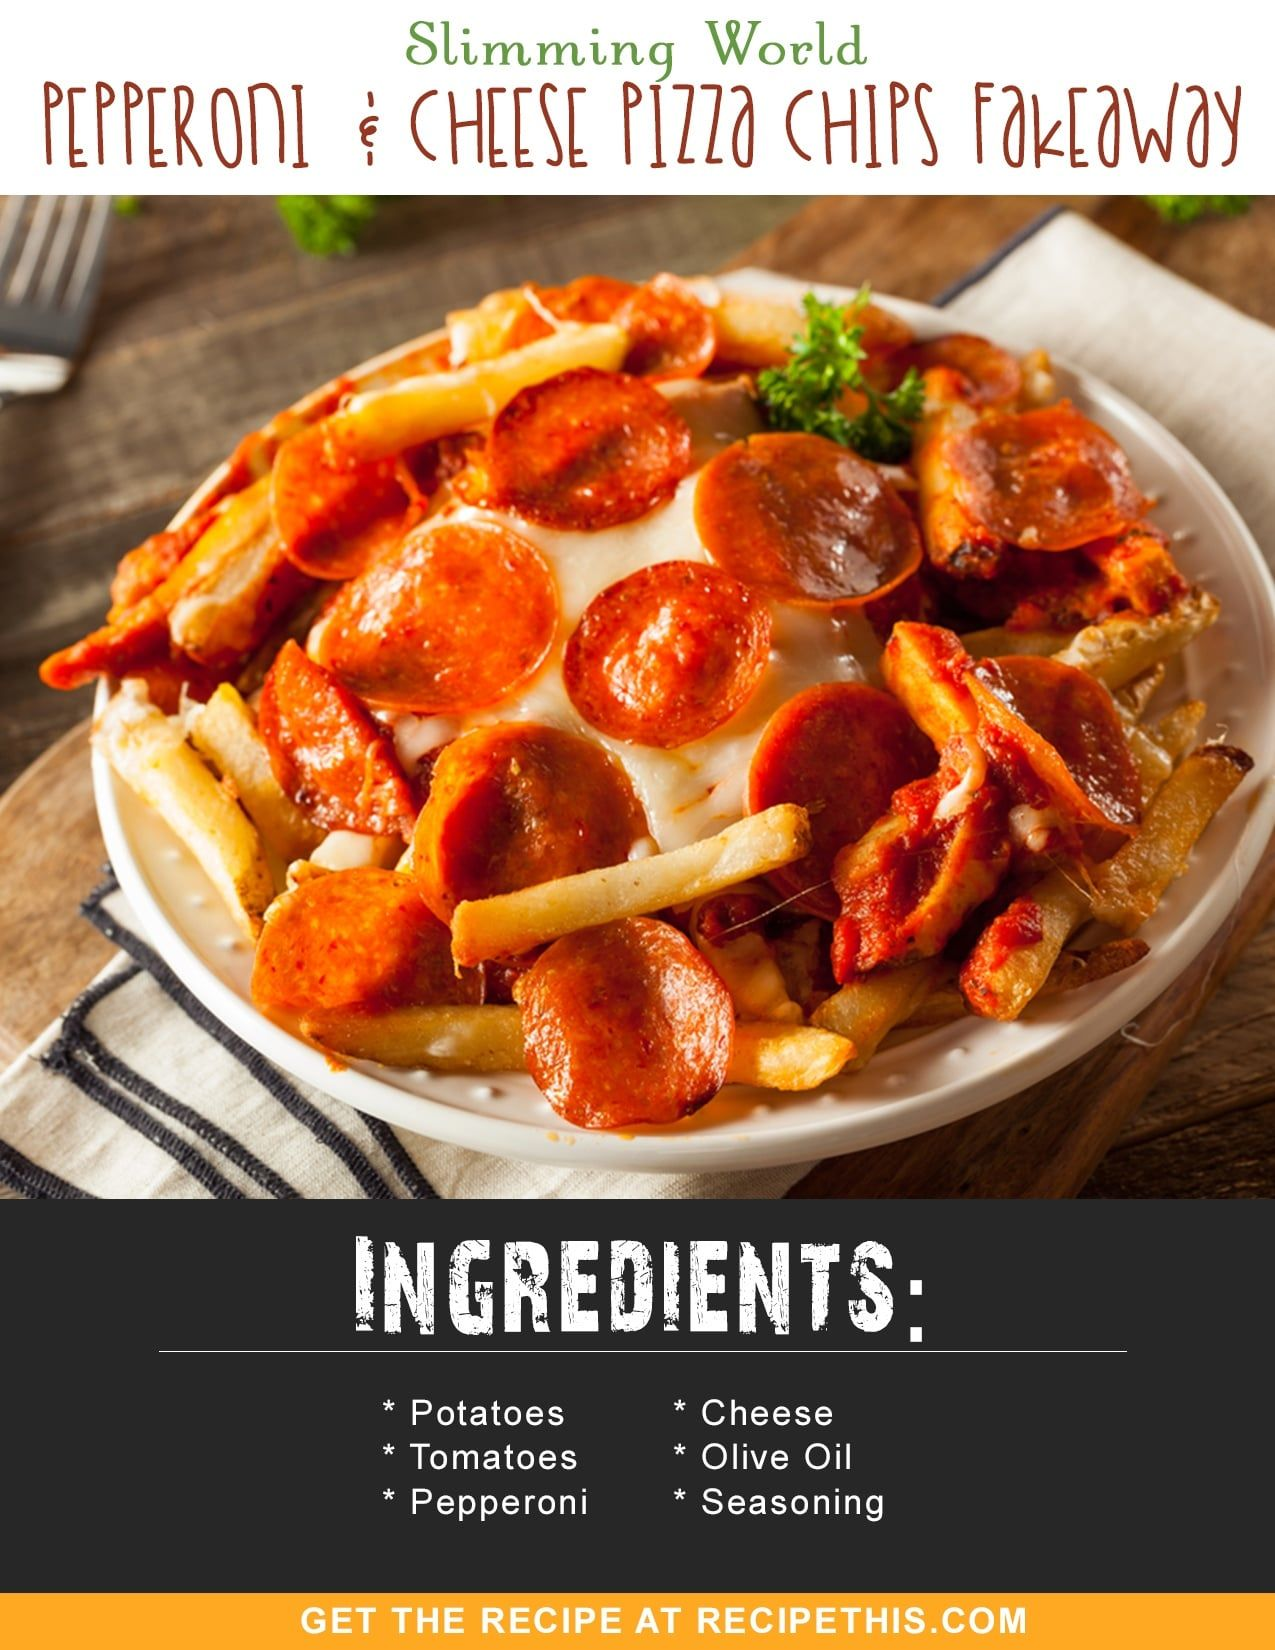 Slimming World Pepperoni & Cheese Pizza Chips